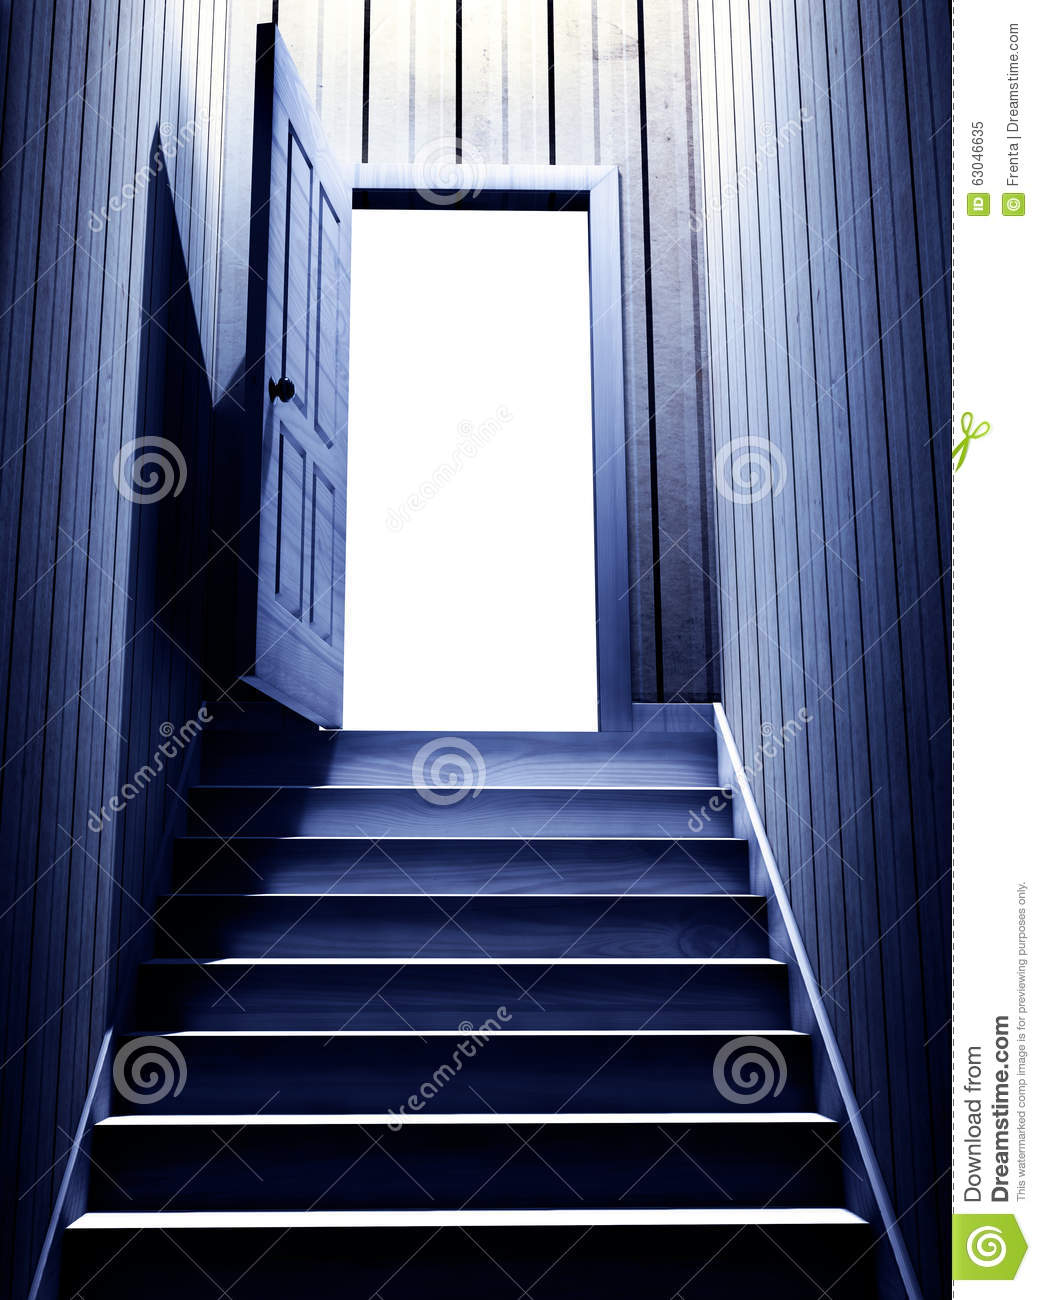 dark basement stairs. Steps Leading From A Dark Basement To Open The Door Stock Illustration - Of Phobia, Night: 63046635 Stairs )